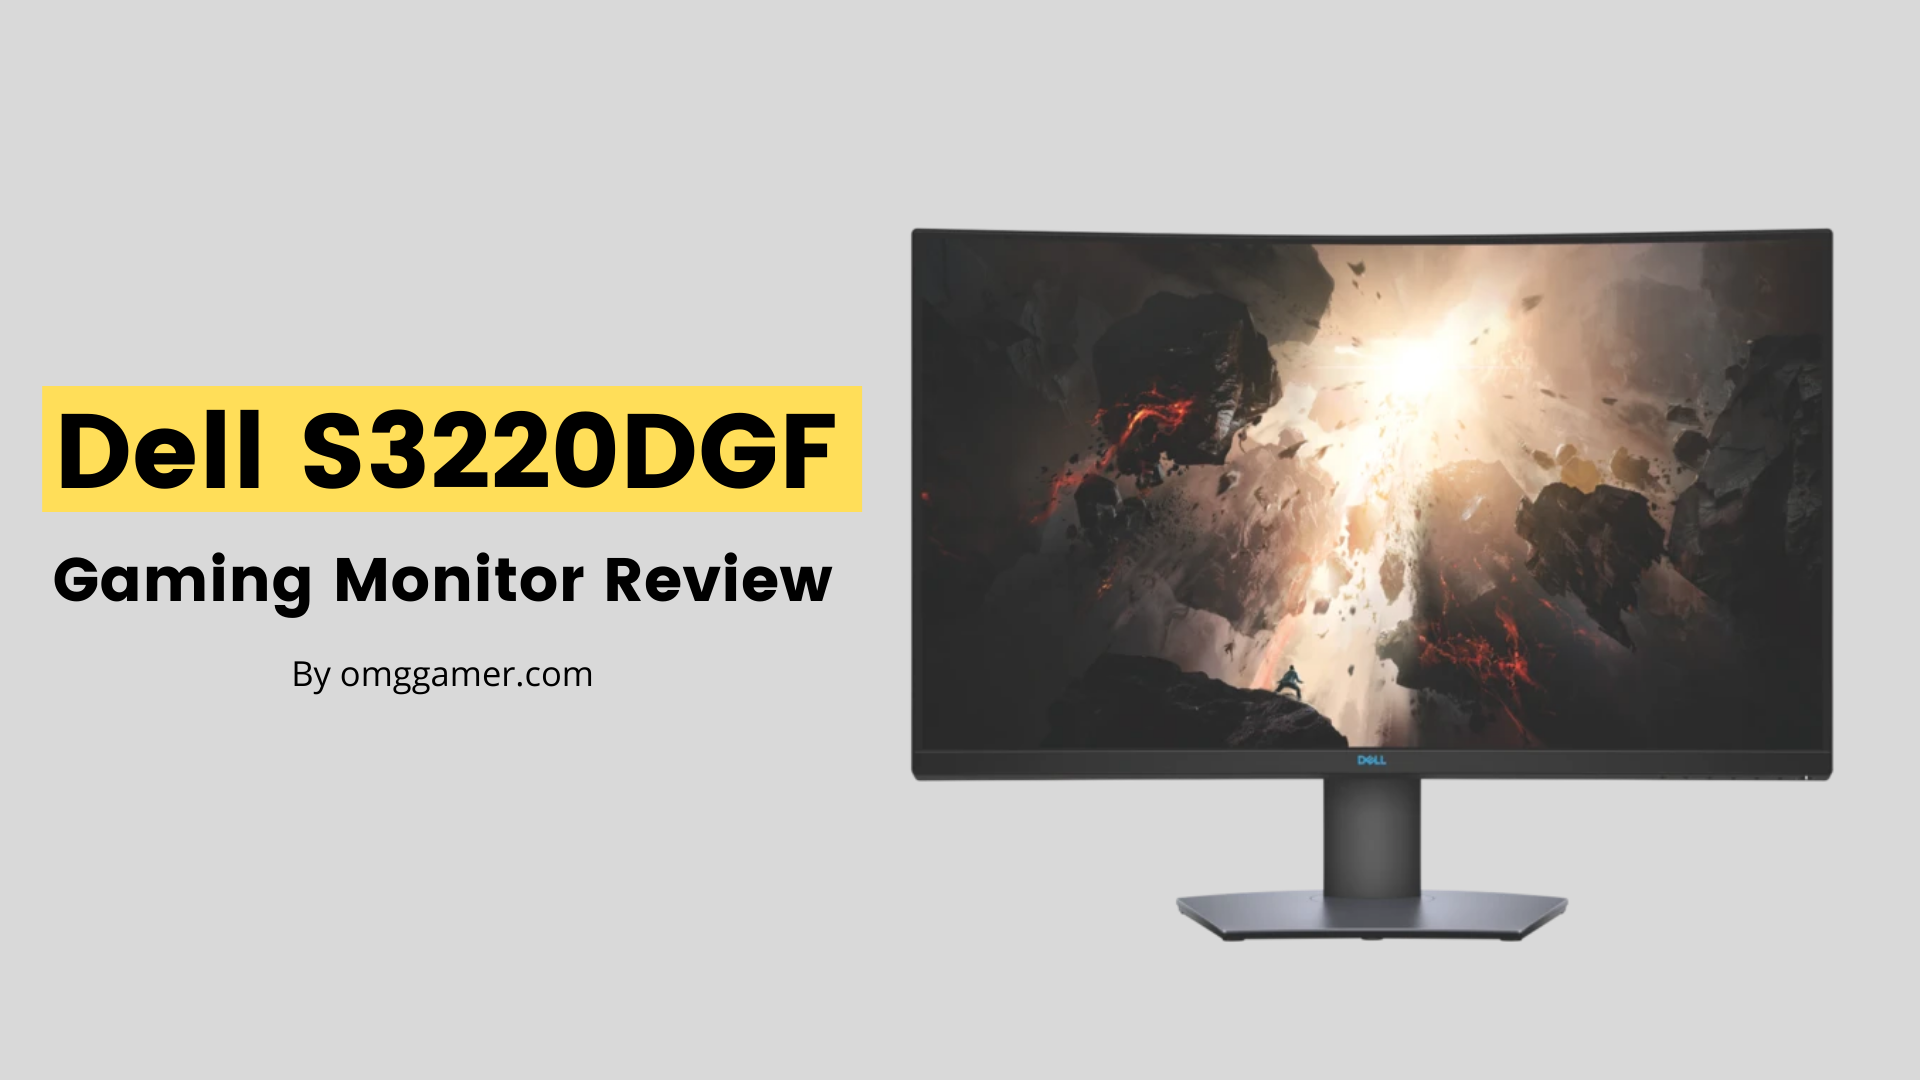 Dell S3220DGF gaming monitor review